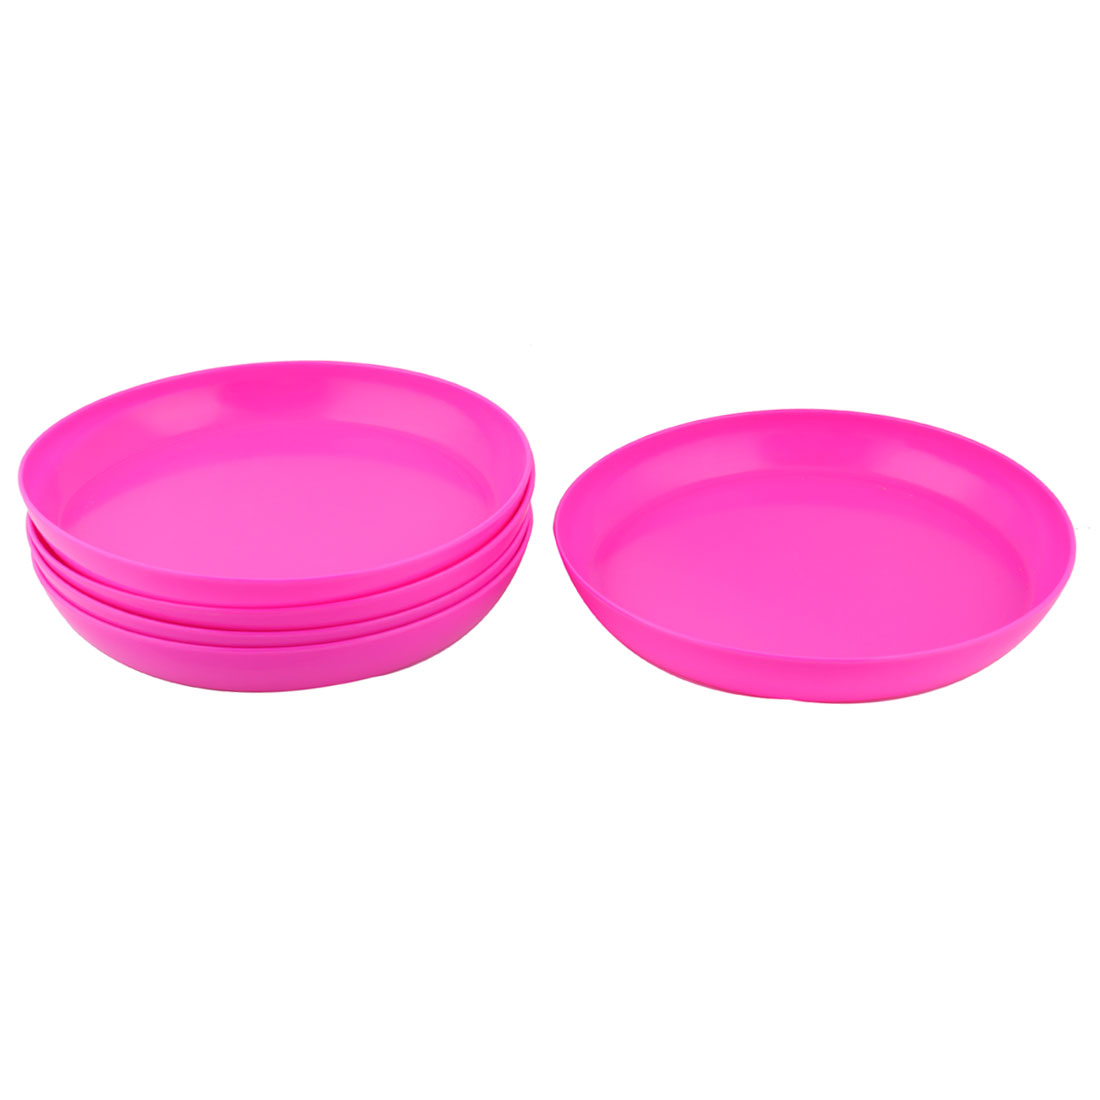 Outdoor Yard Garden Melamine Round Flower Pot Holder Tray Fuchsia 10.2 Inch Dia 5pcs